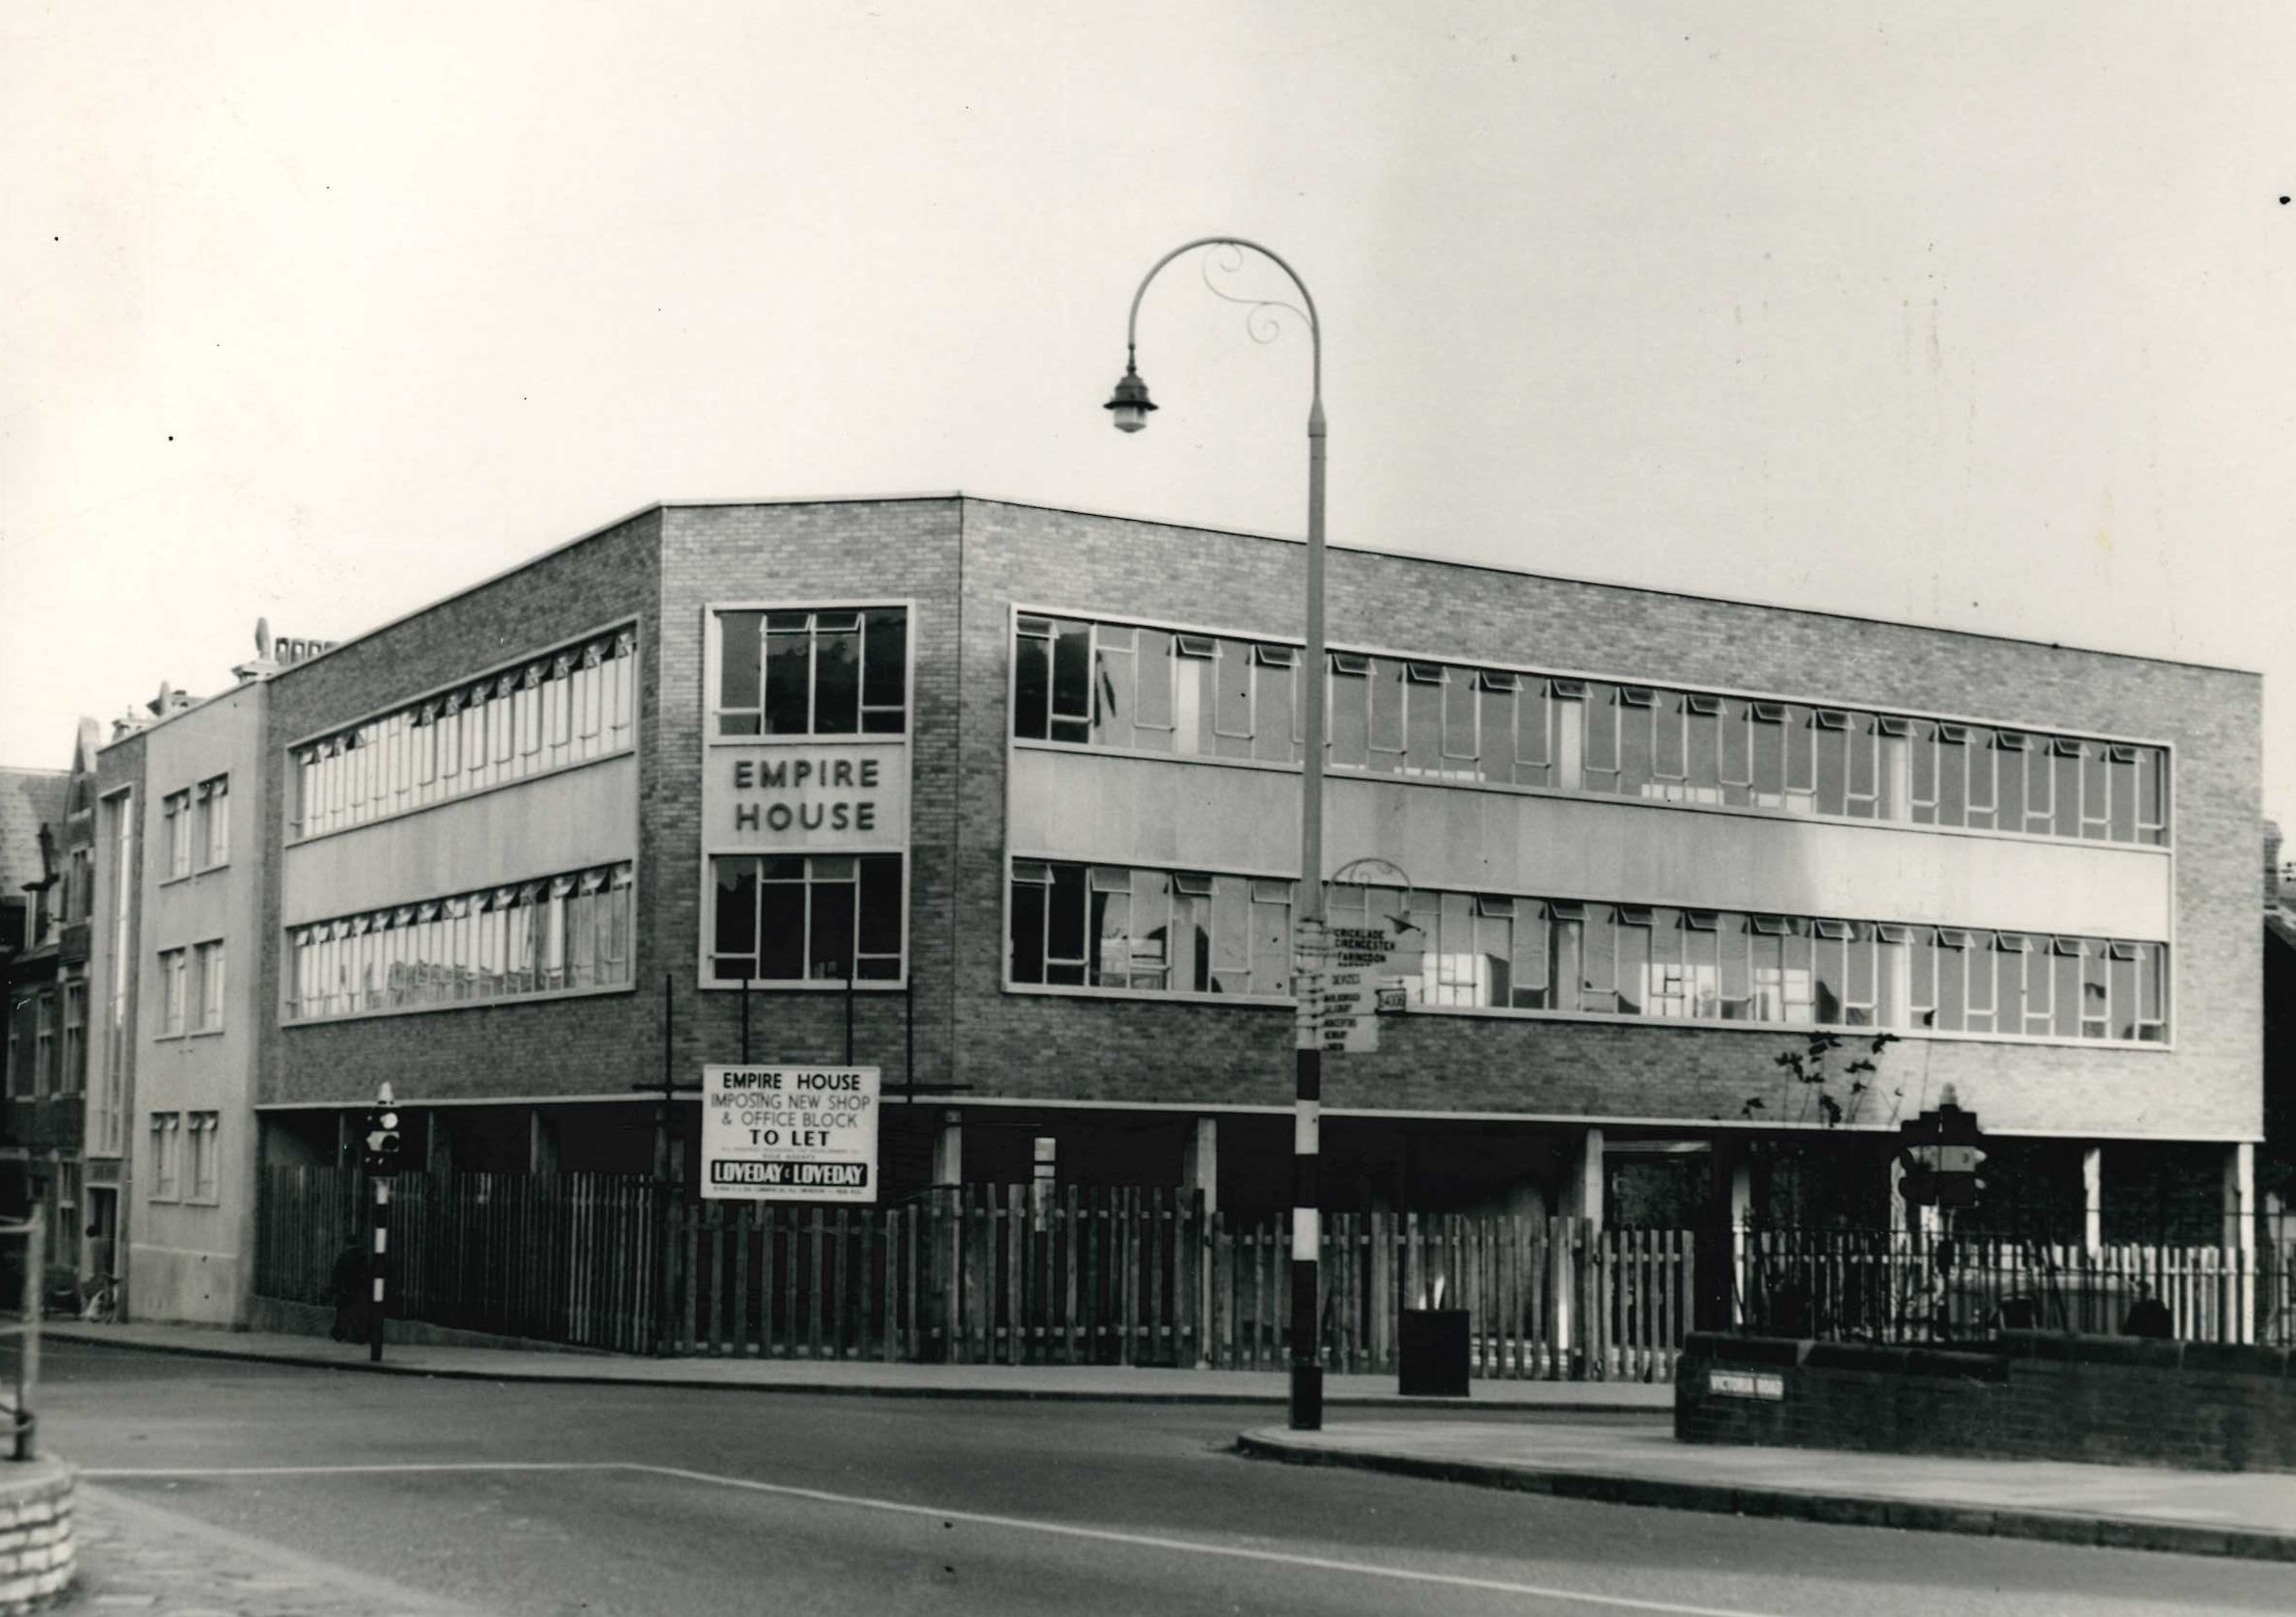 The building which replaced a beloved Swindon theatre